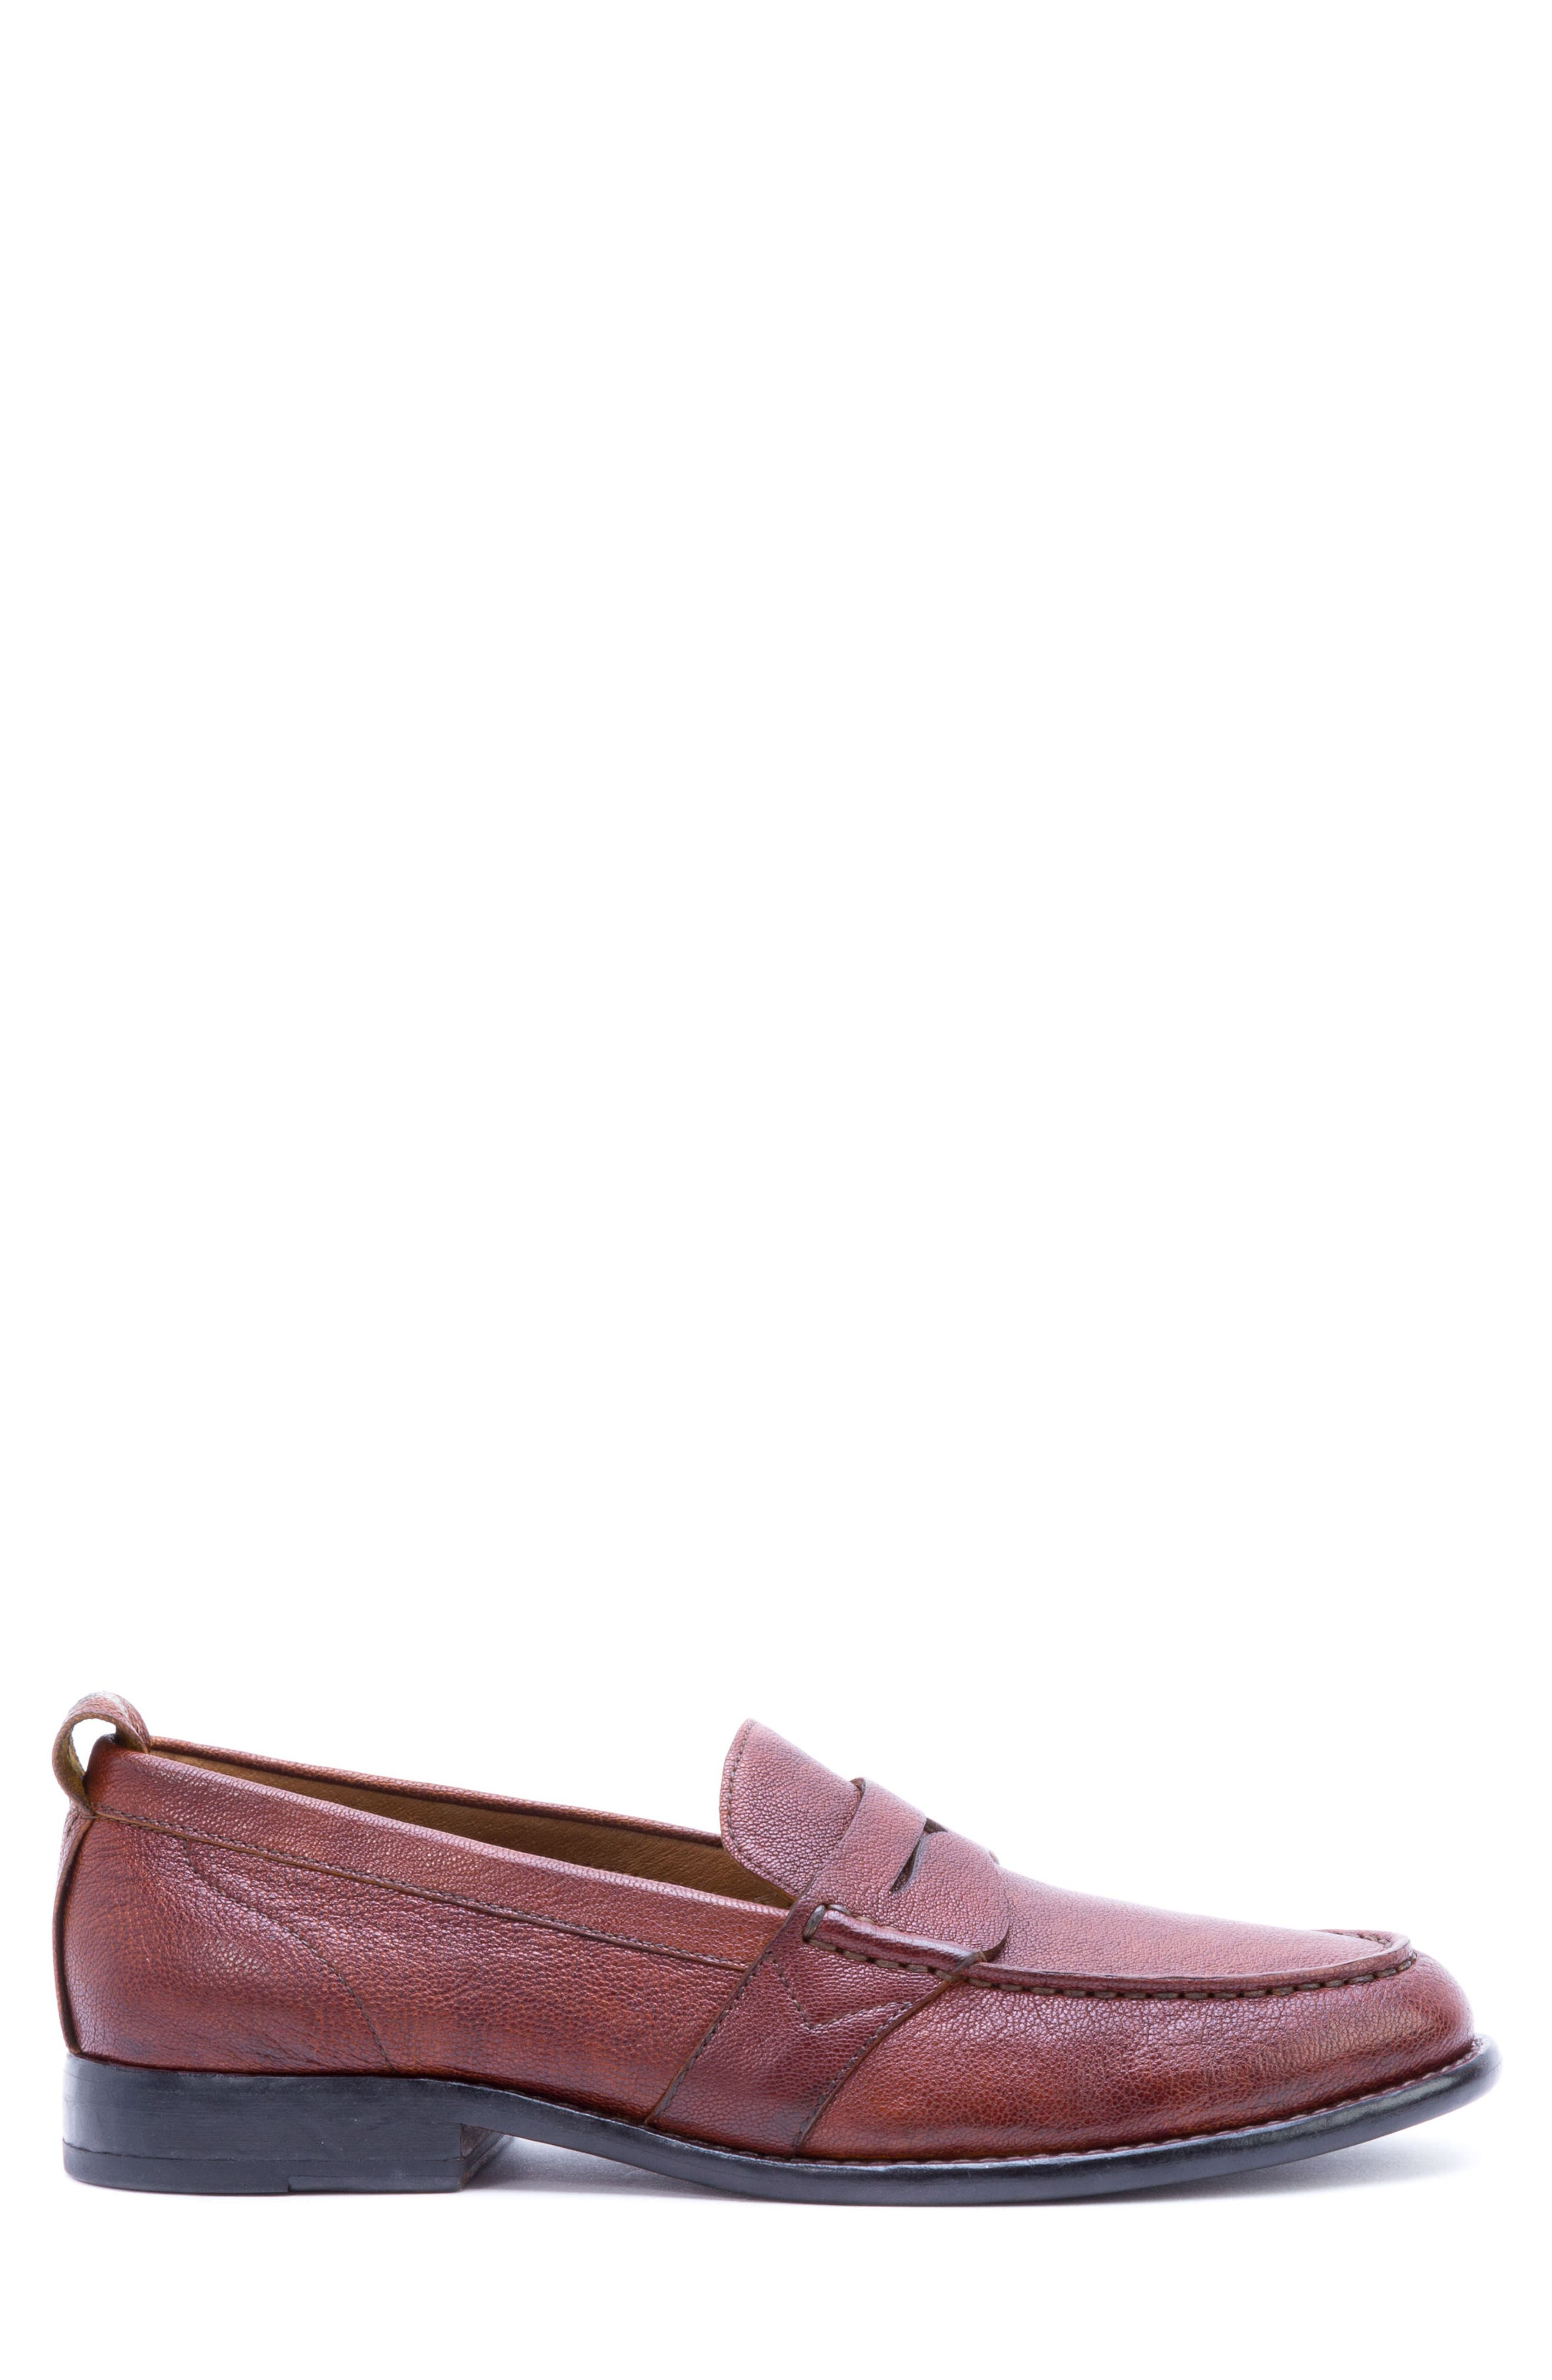 Torres Penny Loafer,                             Alternate thumbnail 3, color,                             Cognac Leather